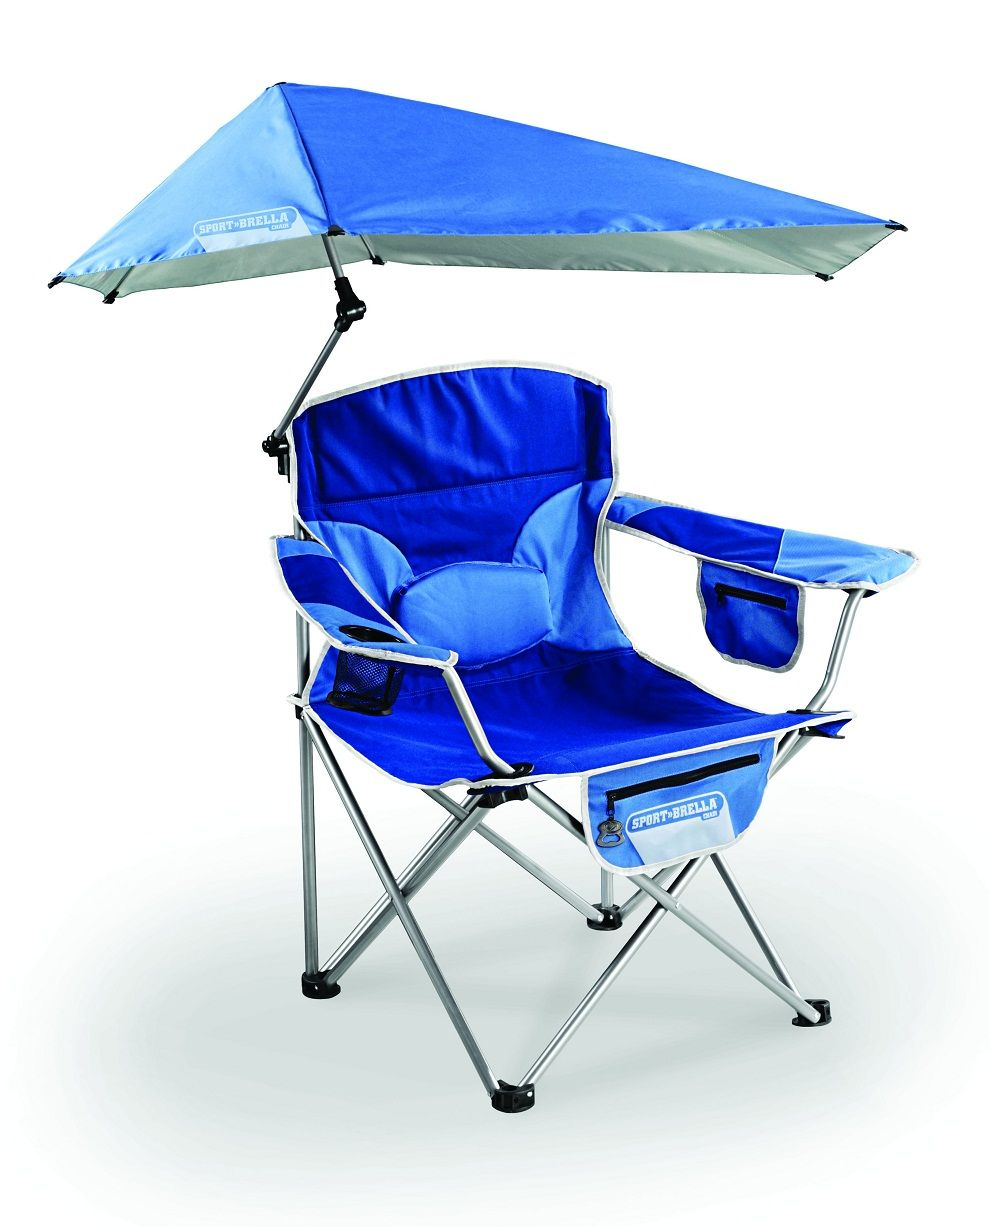 Camping chairs with umbrella - Modern Beach Chair With Umbrella Attached Beach Theme